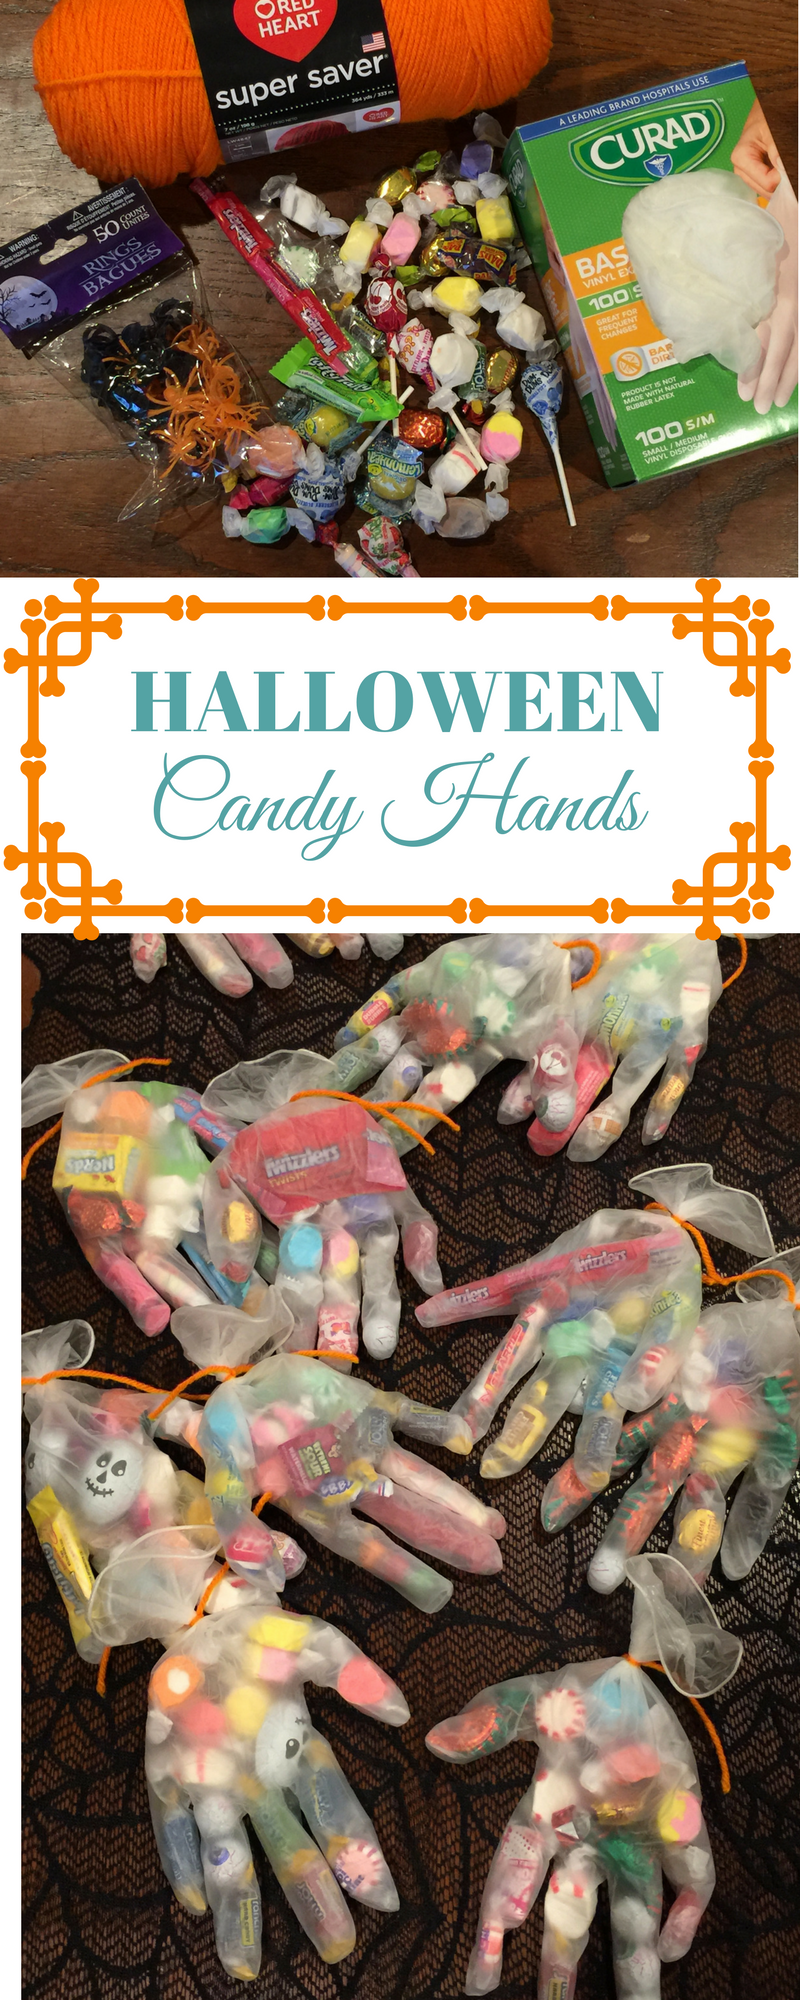 Halloween Candy Hands – A Fun, Spooky Party Favor #spookybasketideas